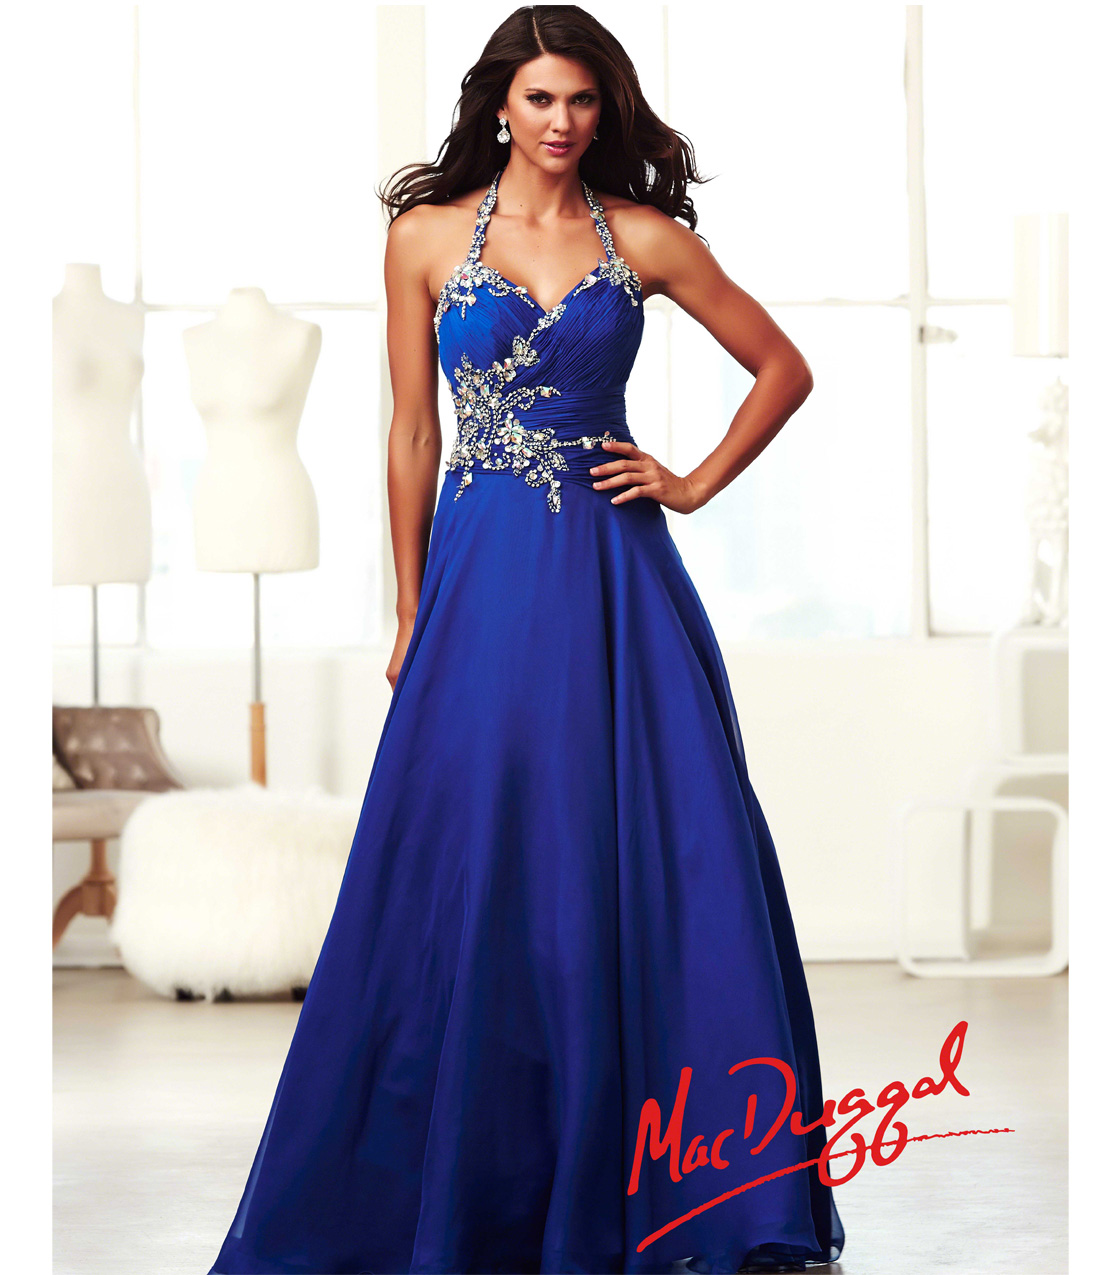 PRE ORDER Mac Duggal 2014 Prom Dresses from Unique Vintage